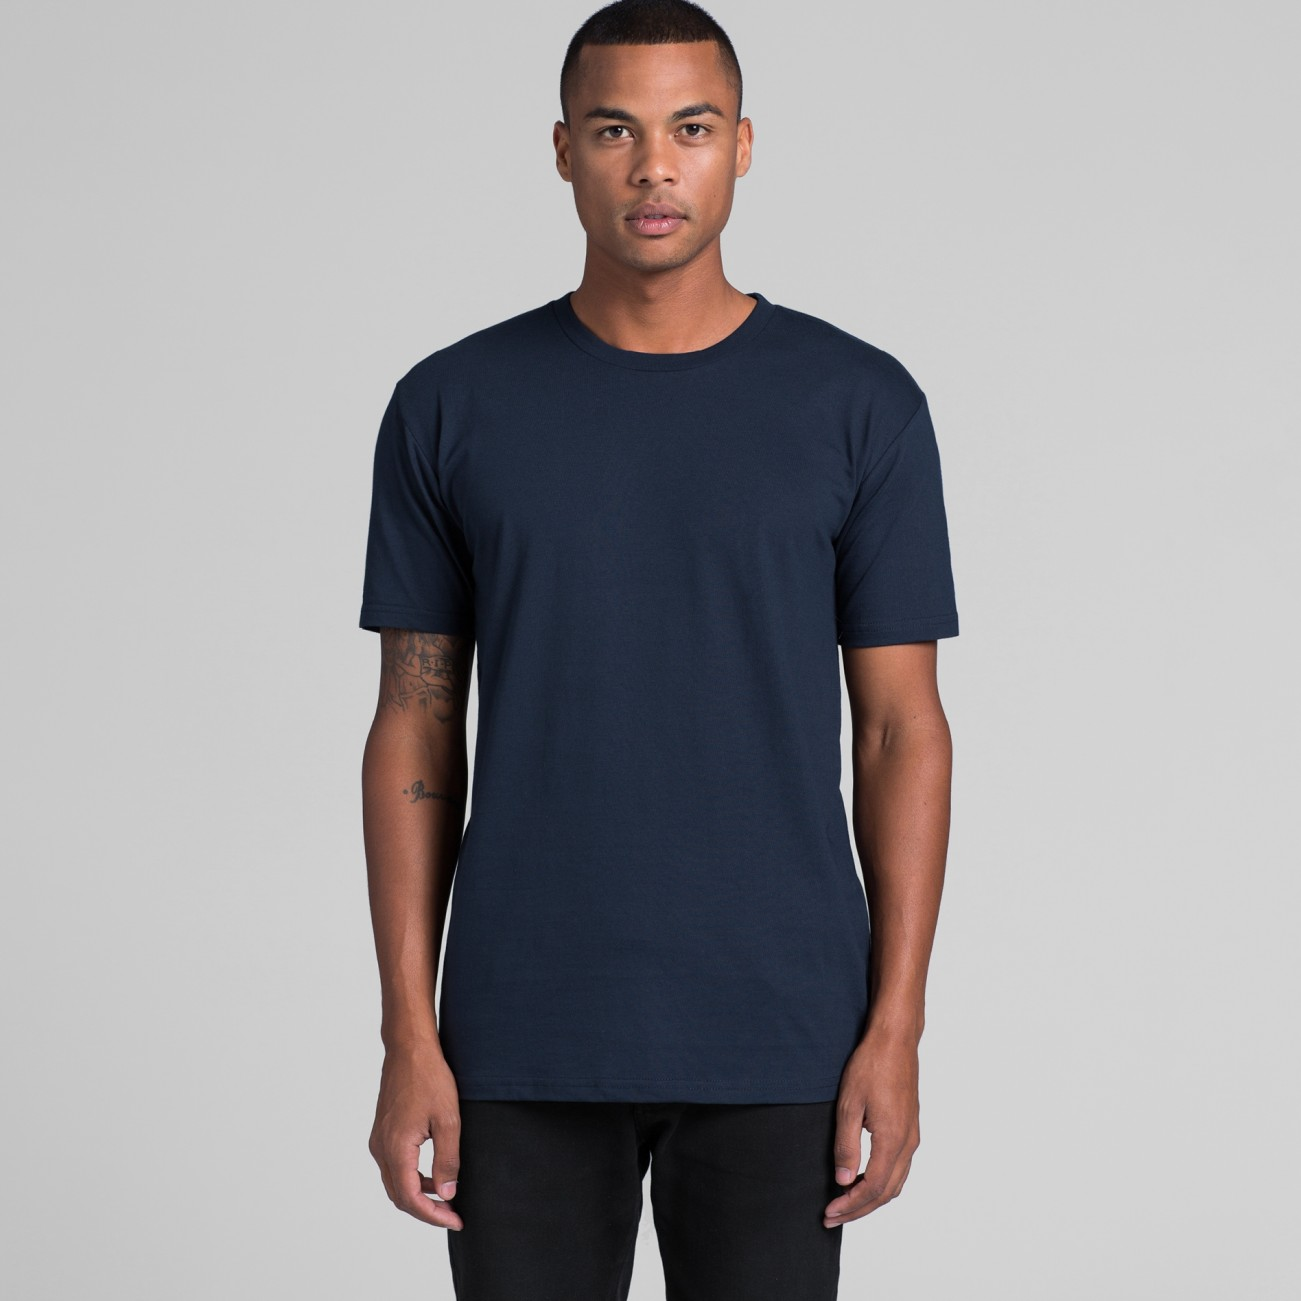 AS 5001 Men's staple tee